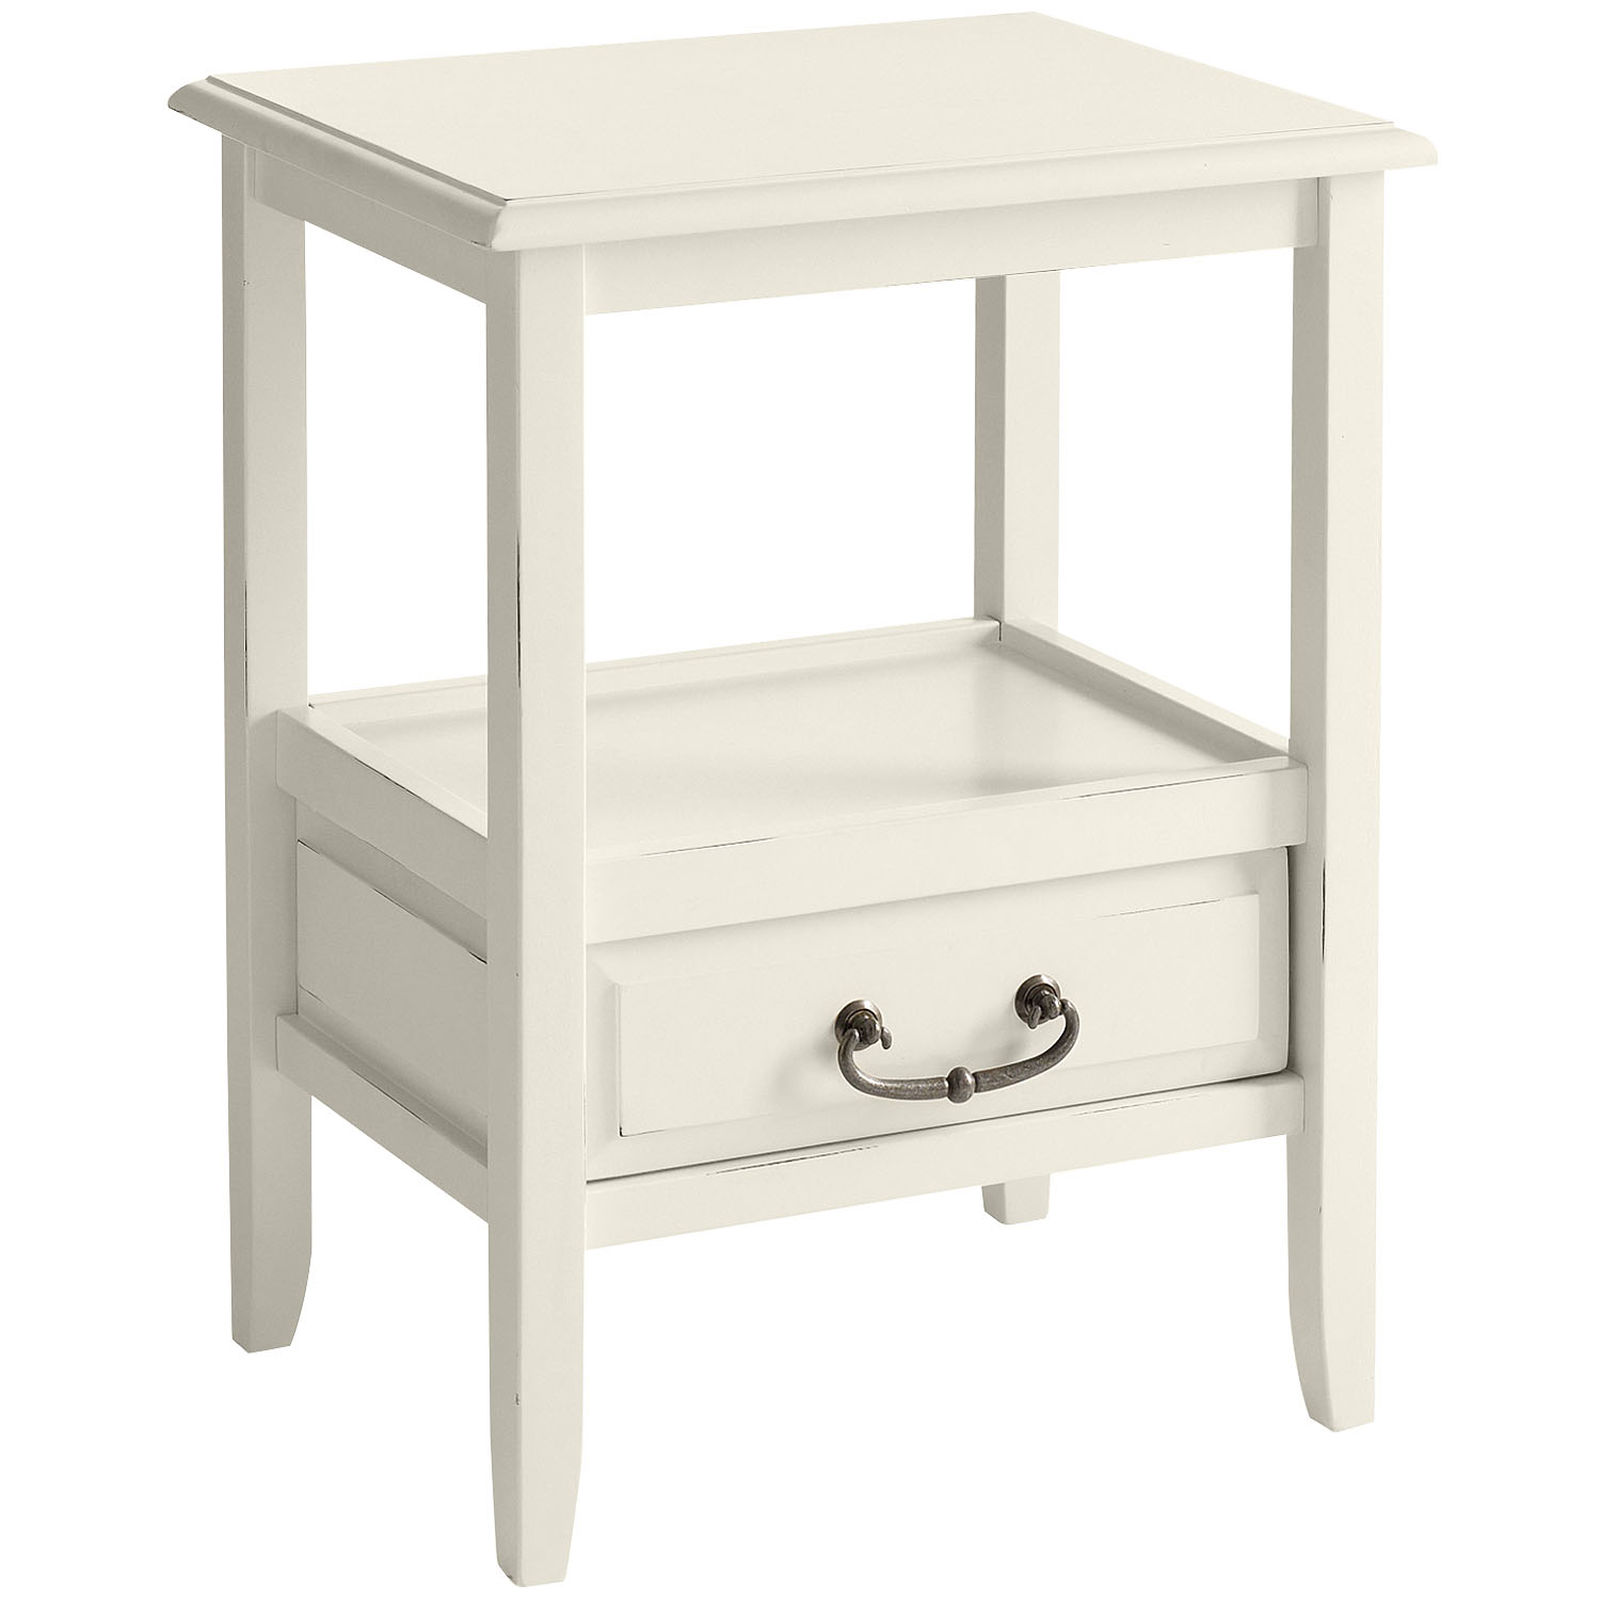 delectable target accent end tables white for bench and storage tall room table outdoor gold modern living antique decorative round kijiji threshold cabinet ott glass furniture